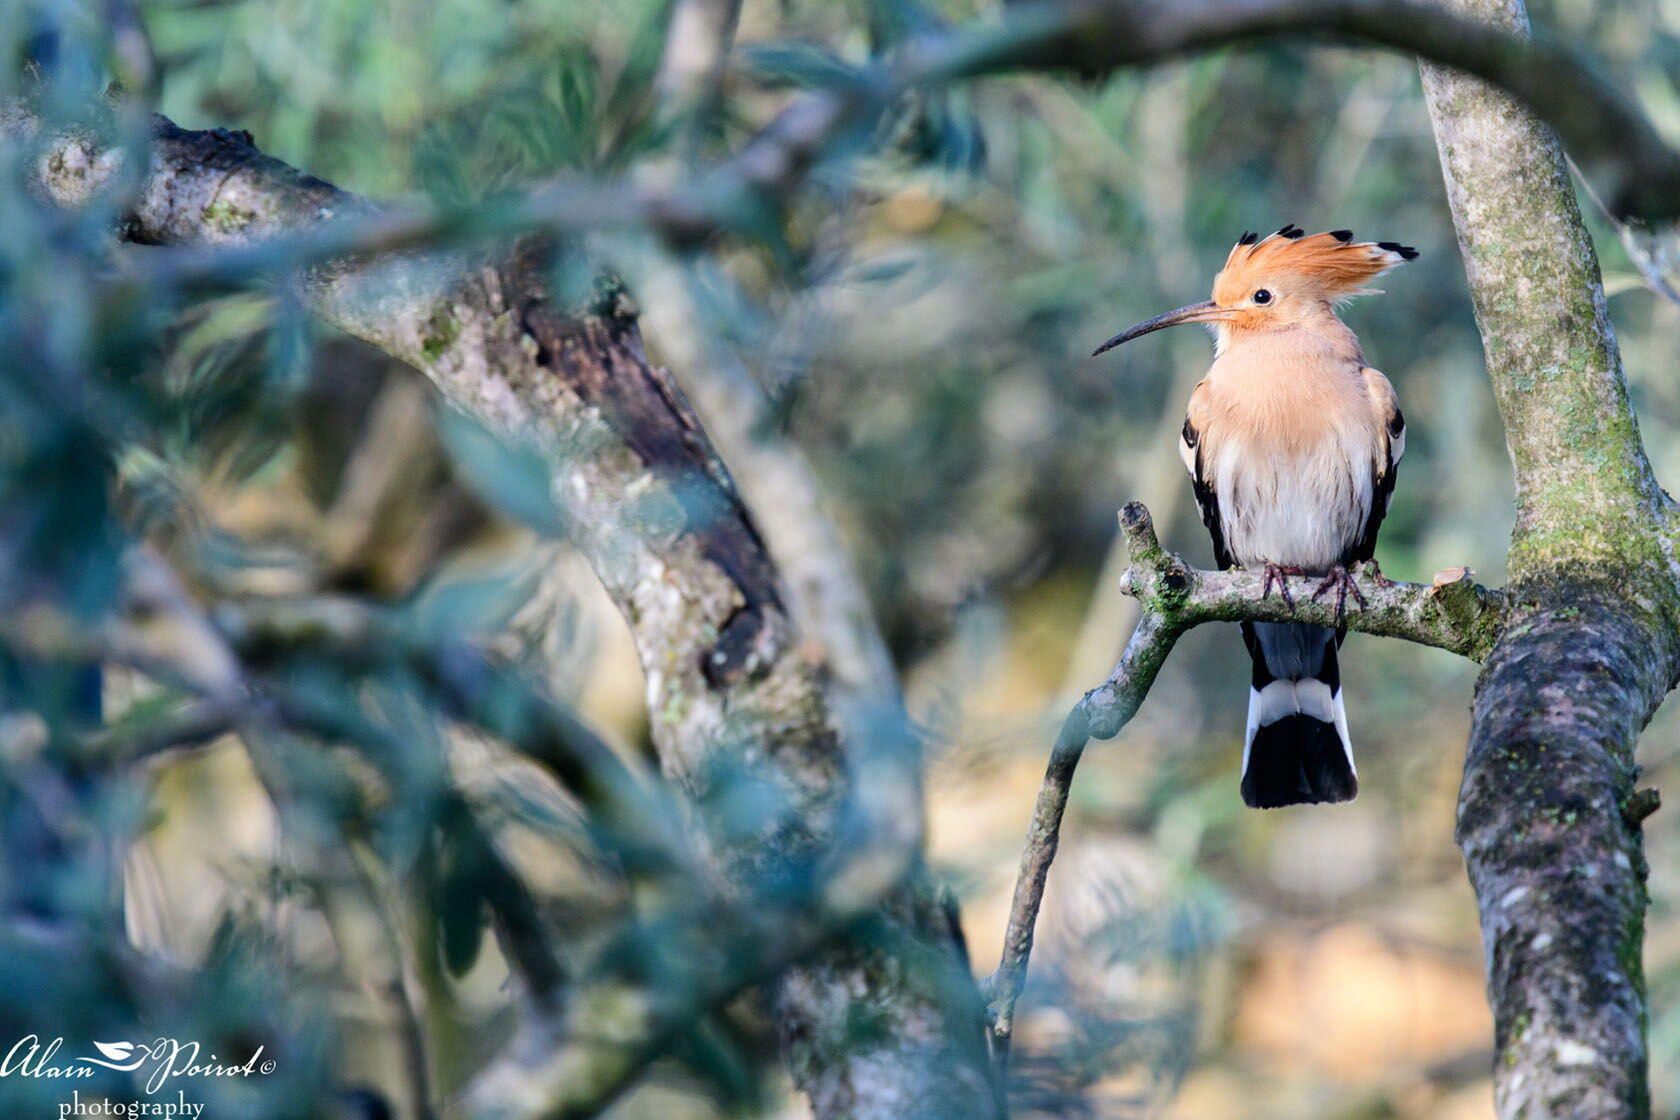 Photography Alain Poirot hoopoe bird Provence